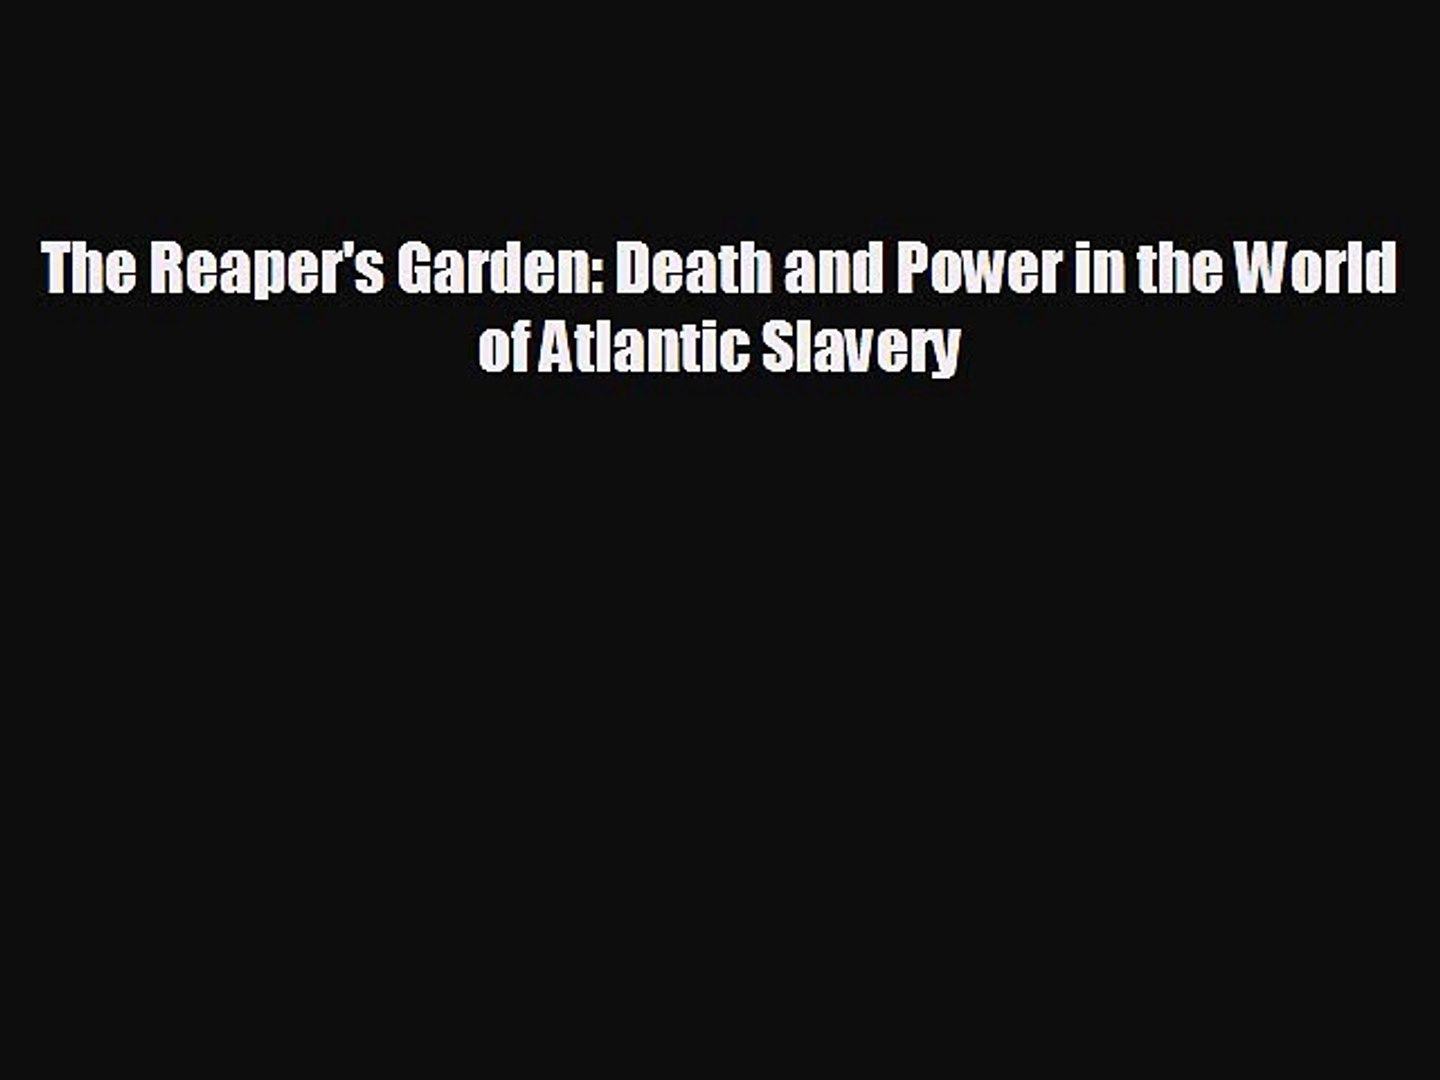 EBOOK ONLINE The Reaper's Garden: Death and Power in the World of Atlantic Slavery# READ ONLINE